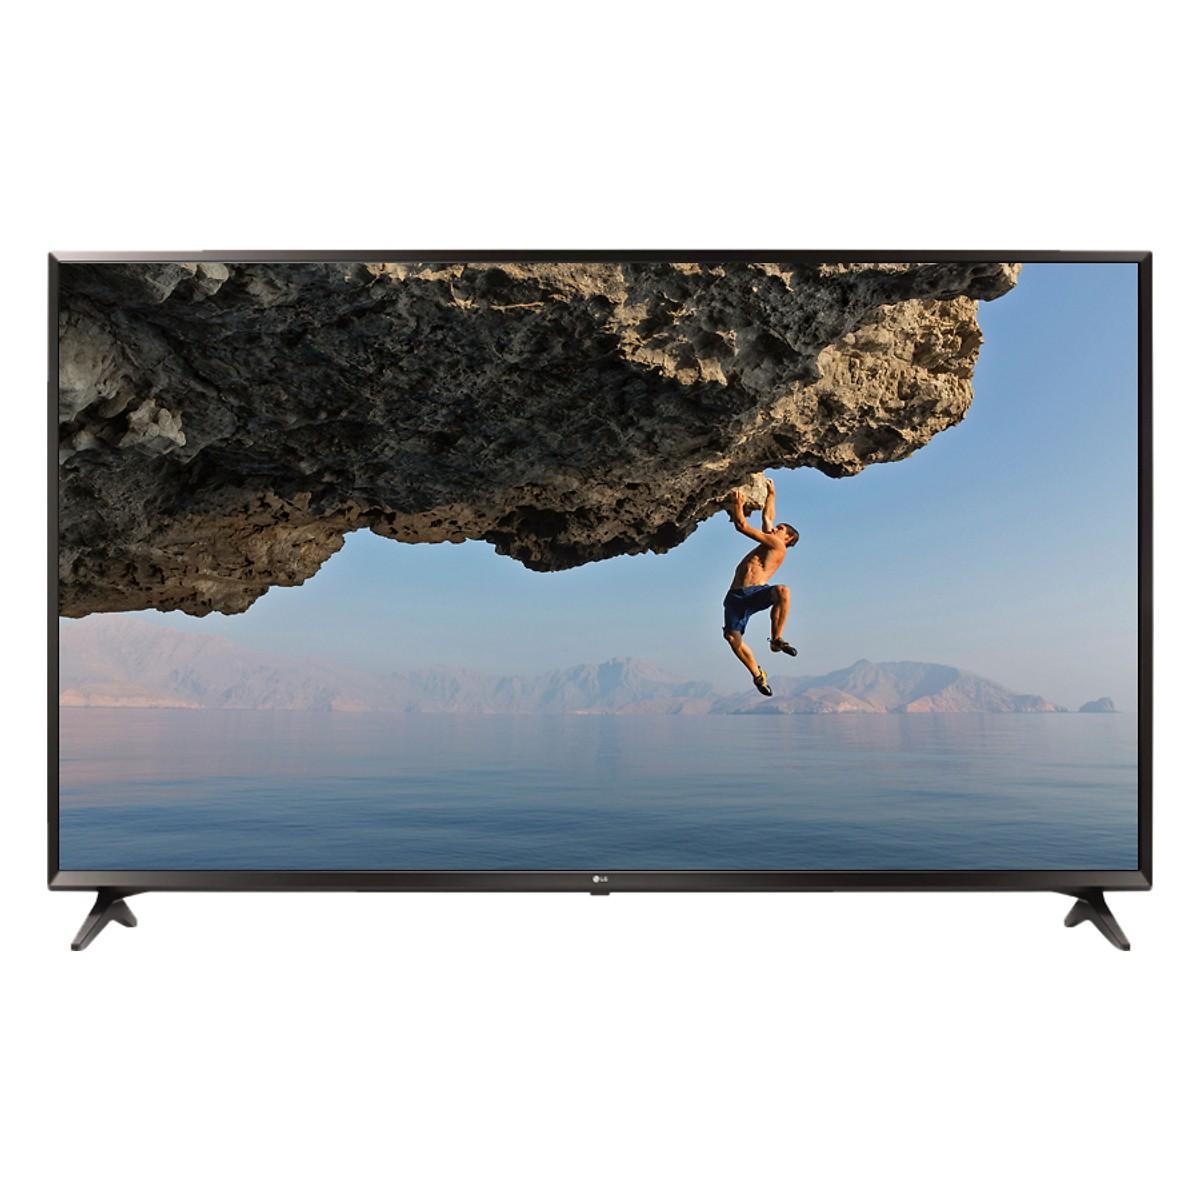 Sony Smart TV 4K 43 inch KD-43X8500G – Mẫu 2019